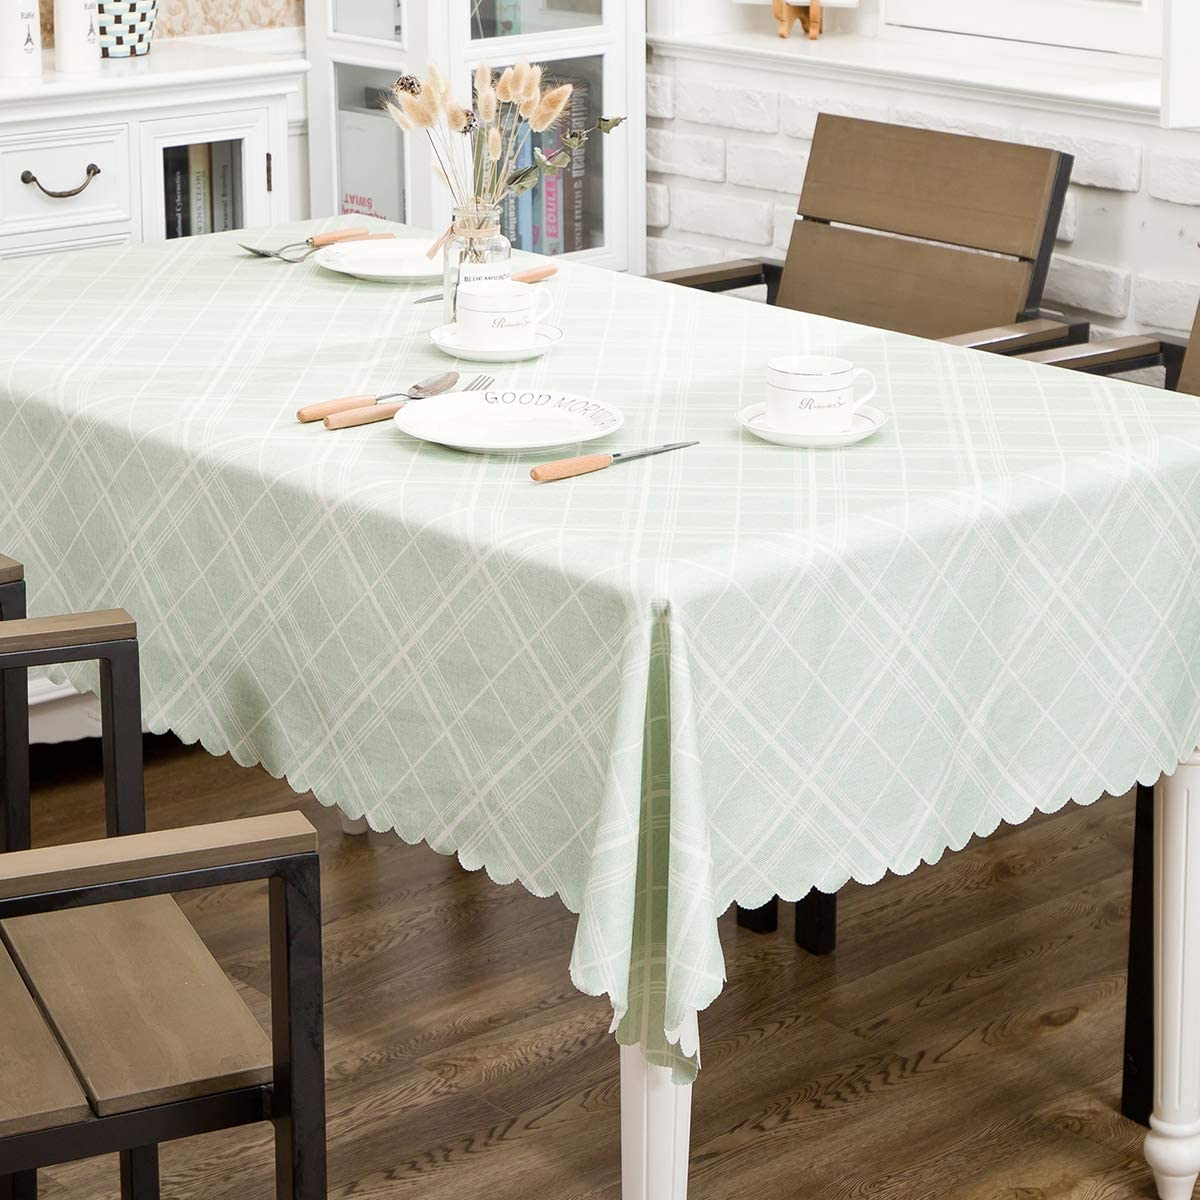 "Hewaba Rectangle Printed Tablecloth - 60"" x 84"" Polyester Washable Table Cover, Seats 6-8 People, Wrinkle Free, Oil-Proof/Waterproof Tabletop Protector for Kitchen Dining Party - Twill Lake Blue …"